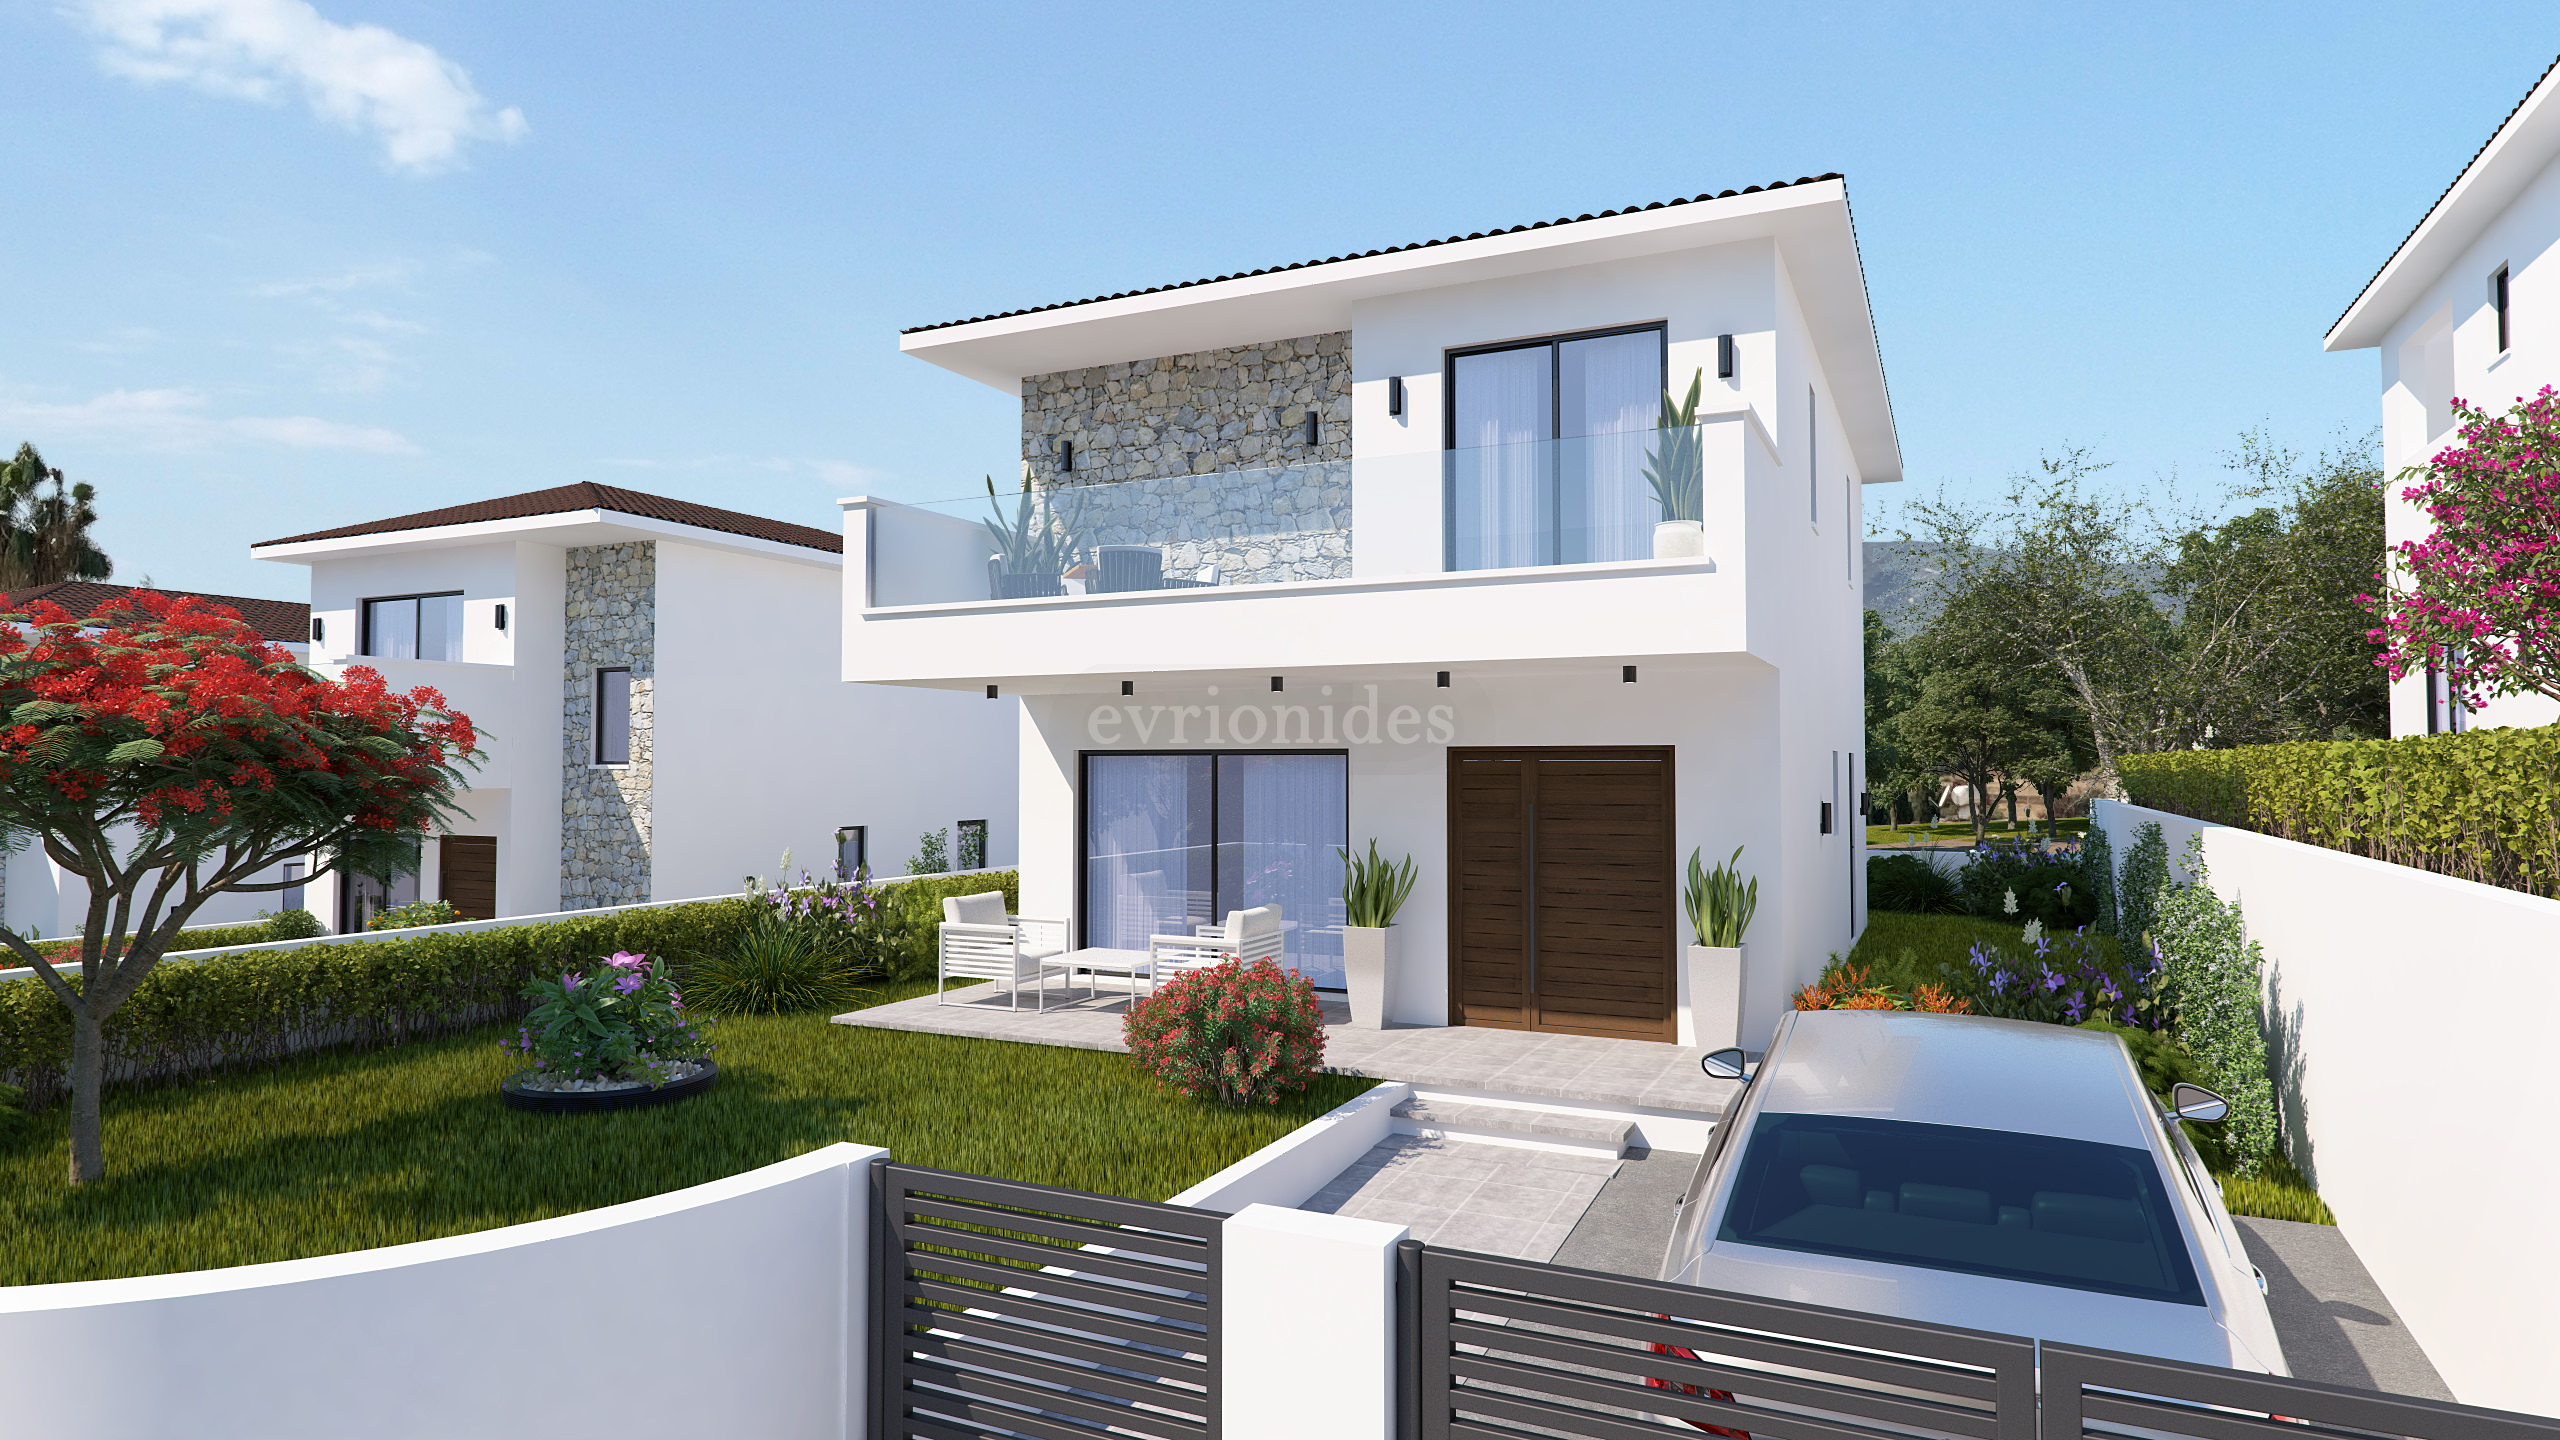 3 Bedroom Detached house in Pyrgos with garden and swimming pool